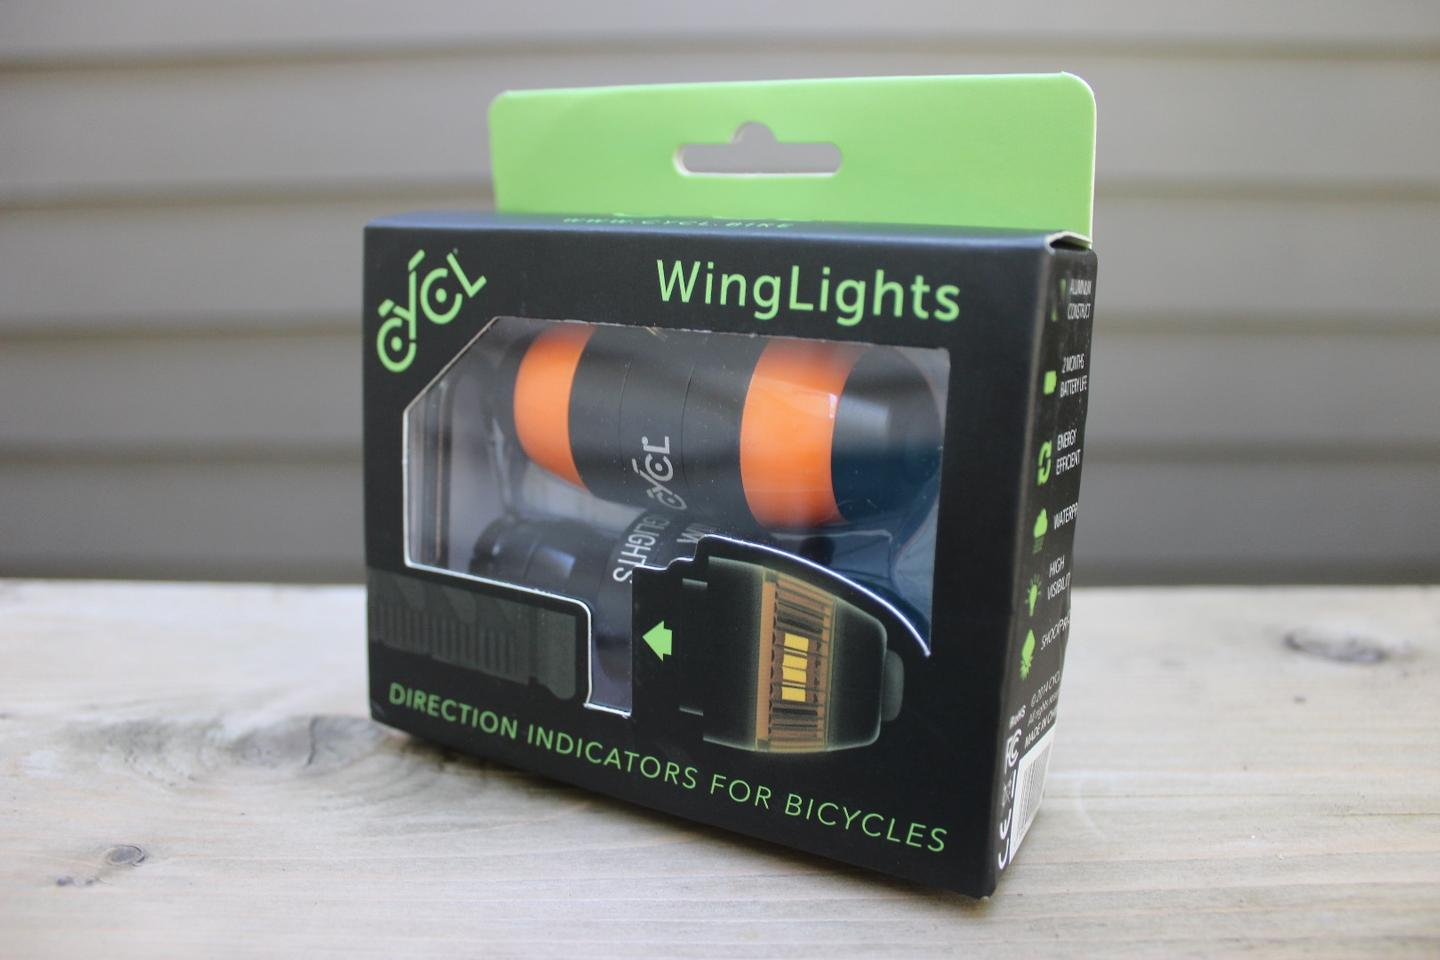 Should you be interested in buying some WingLights for yourself, they can be ordered from Cycl for $50 a pair